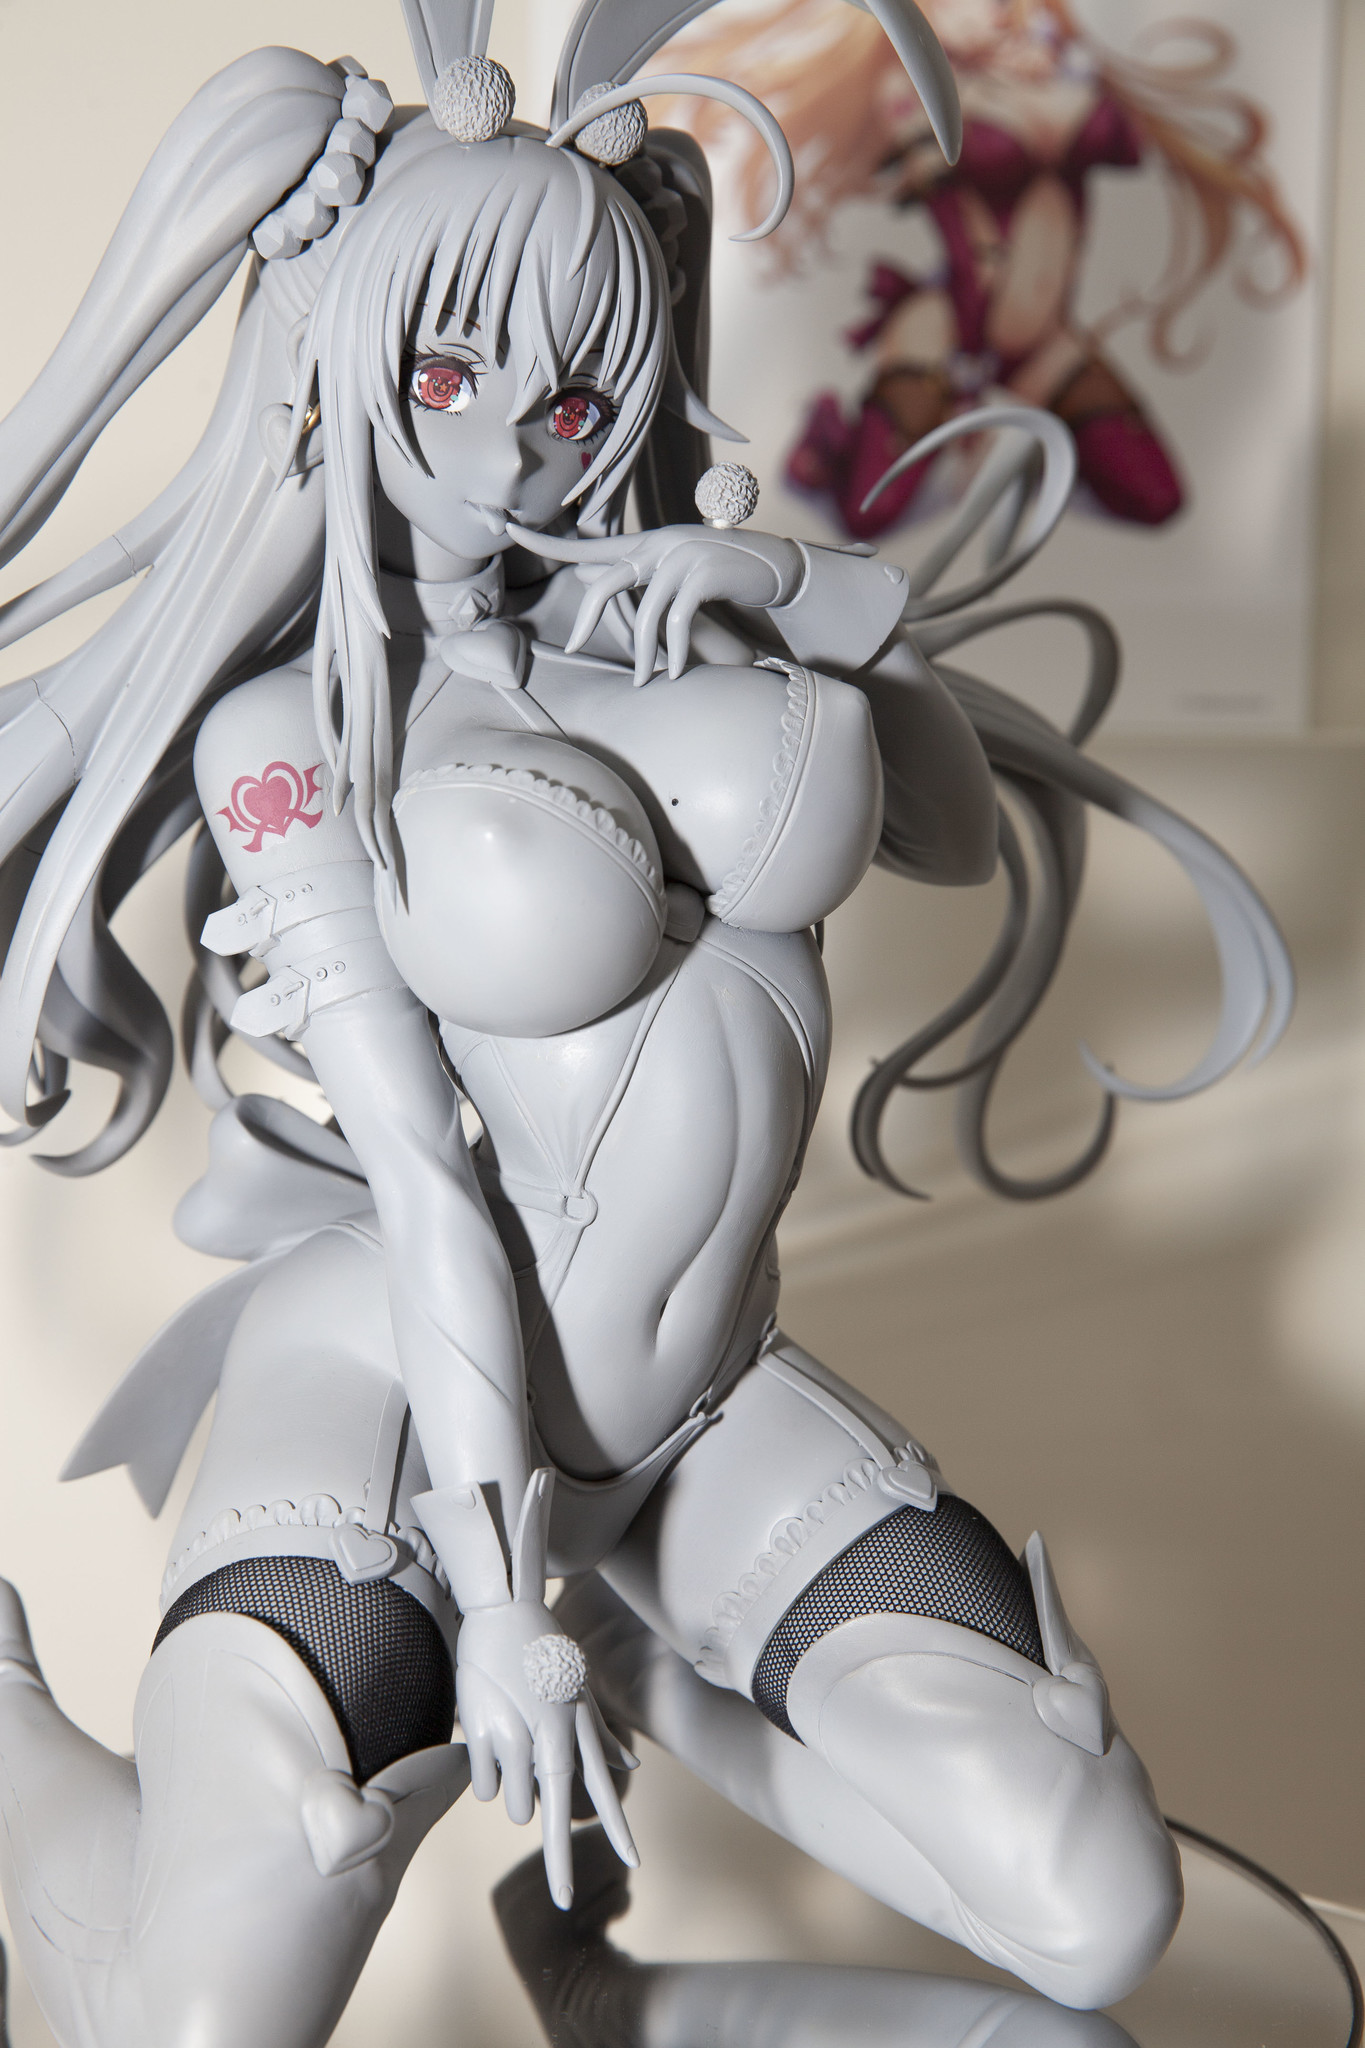 https://static.myfigurecollection.net/upload/pictures/2020/02/09/2384500.jpeg